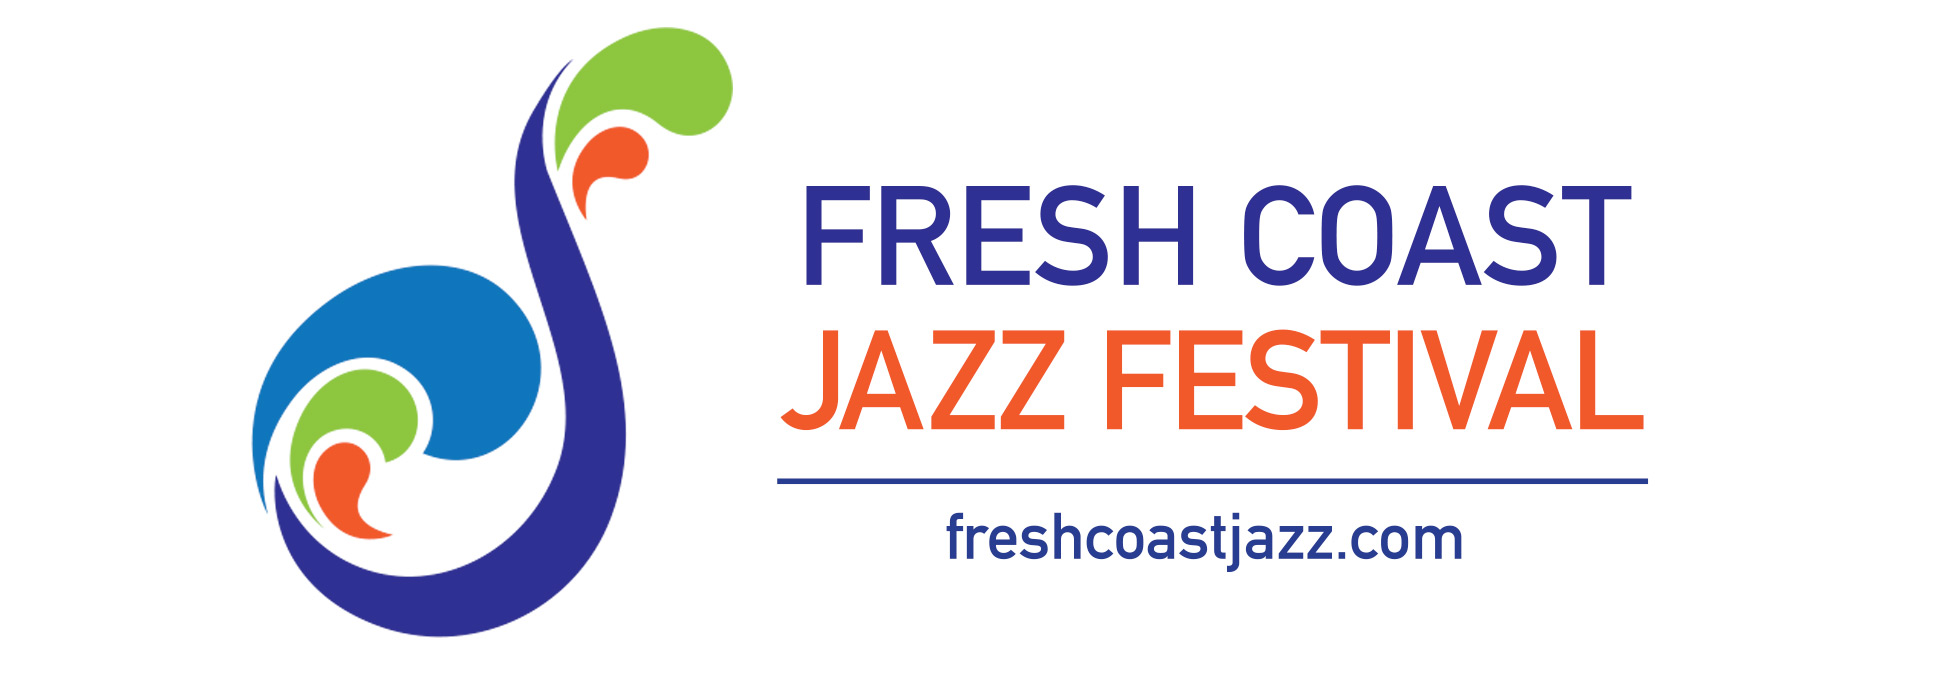 Fresh Coast Jazz Festival at the Marcus Center in Milwaukee